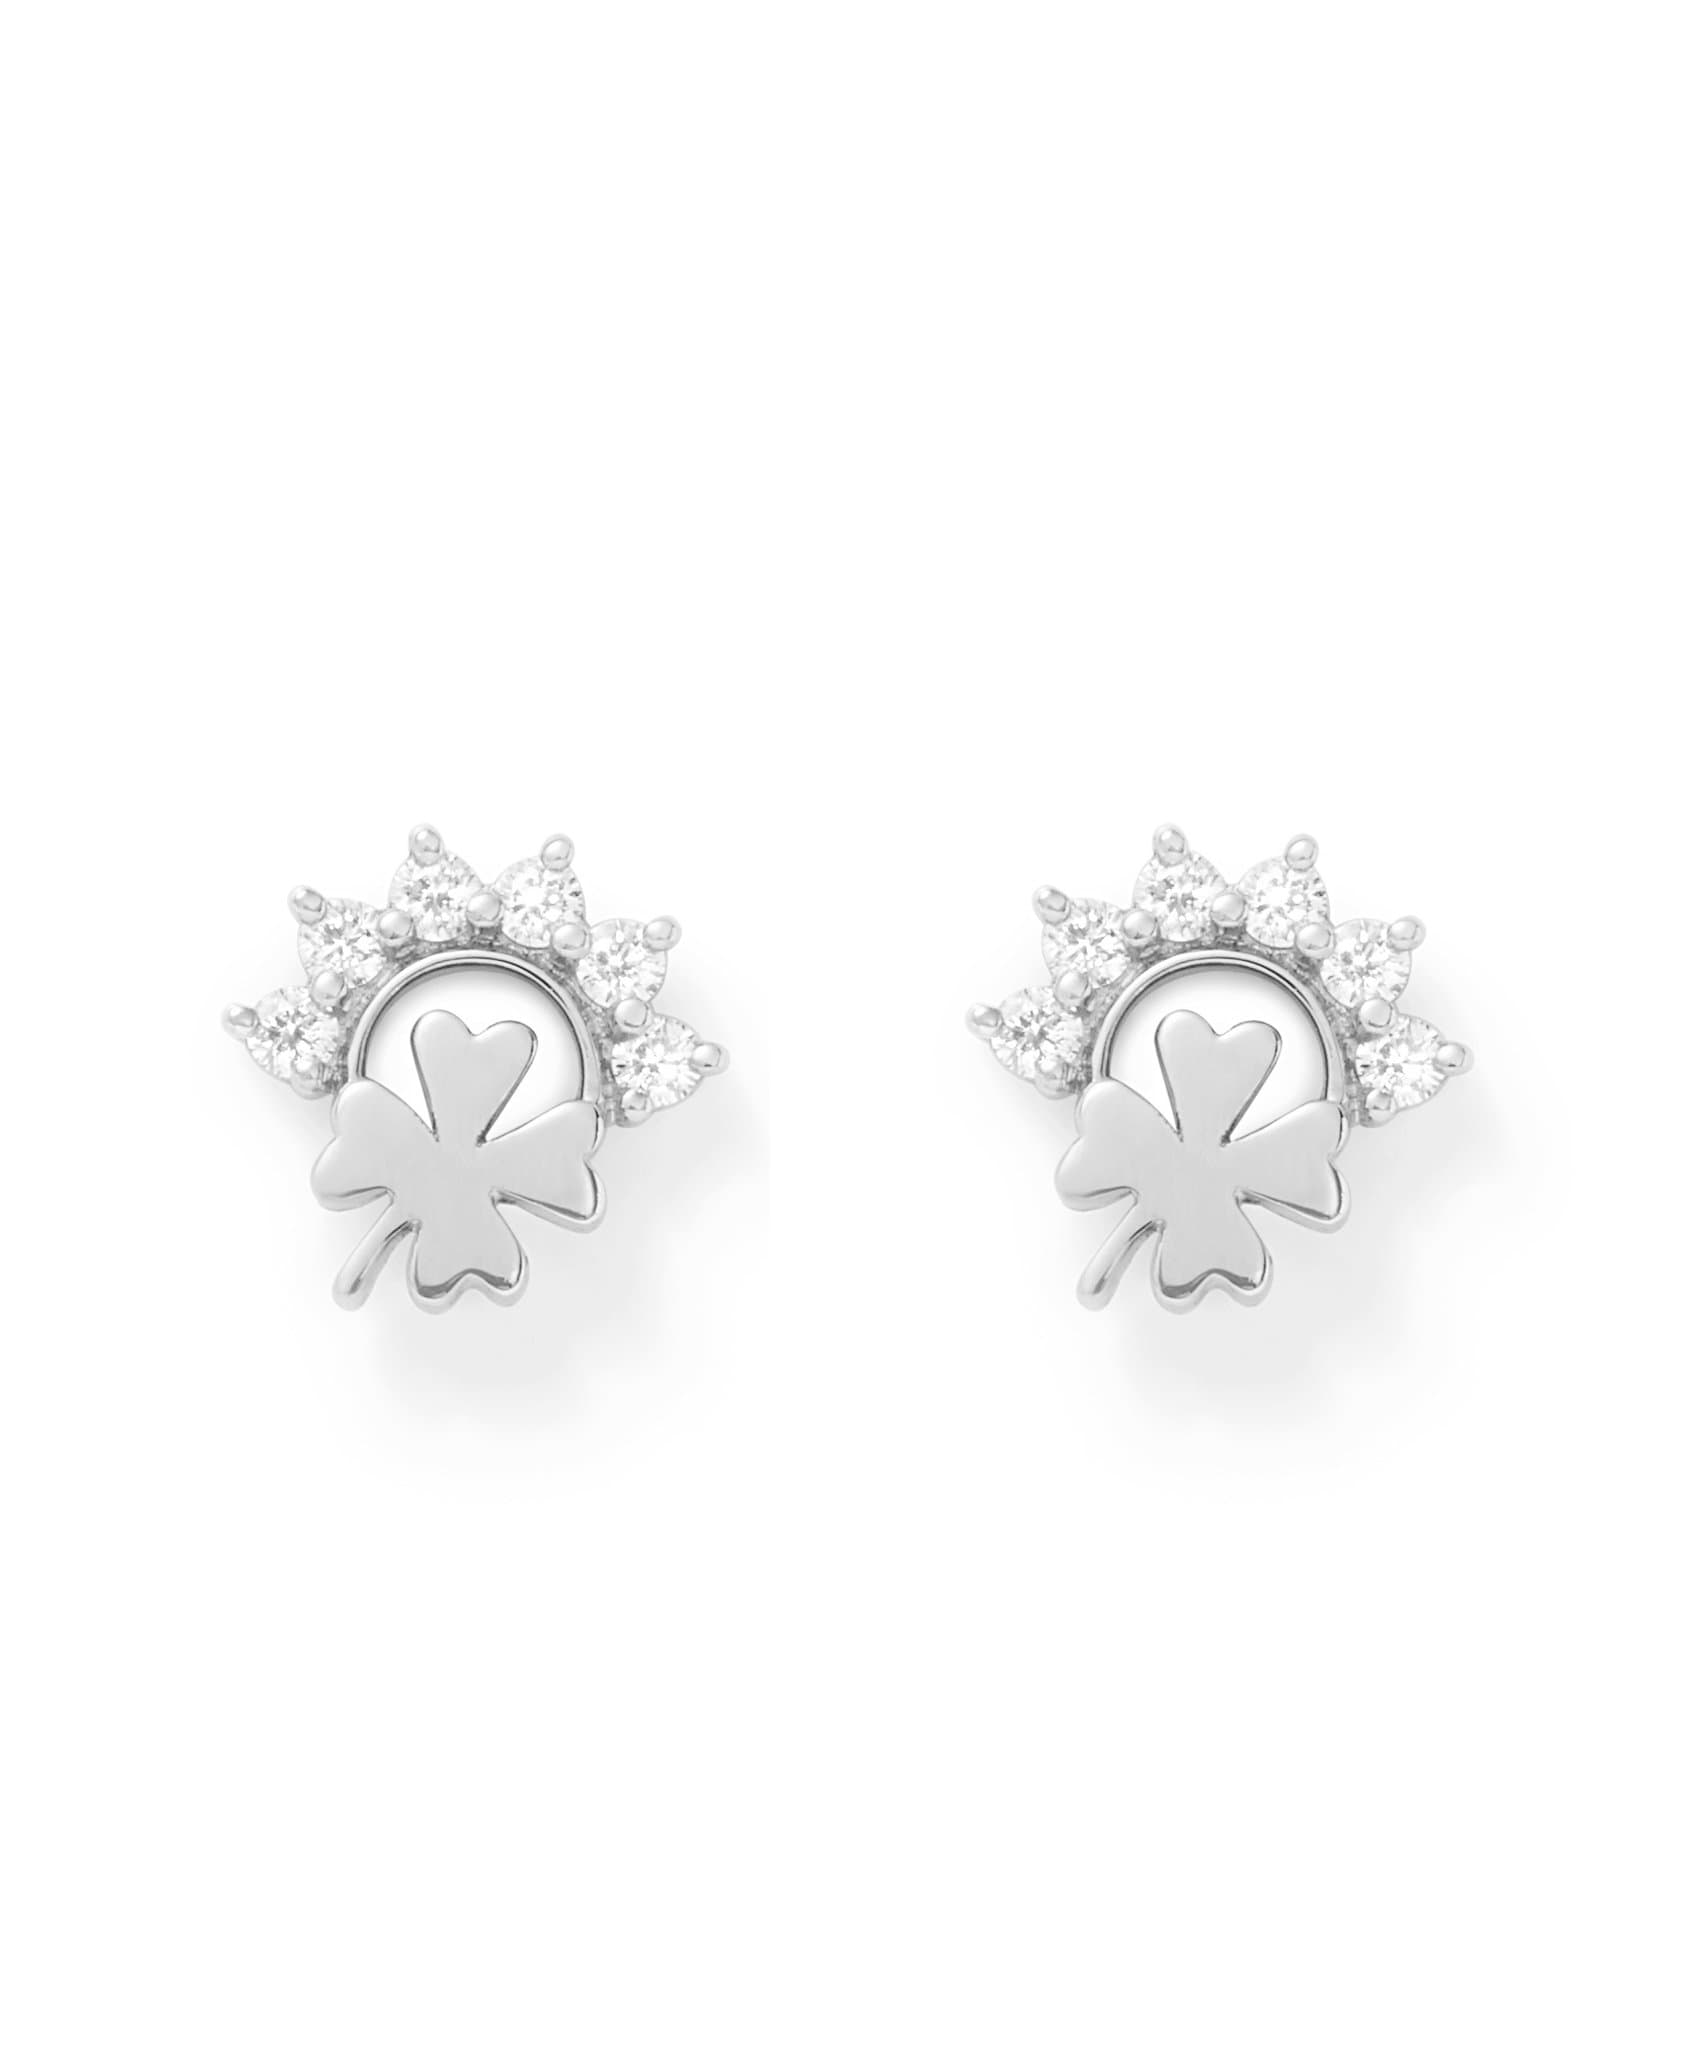 Luck Studs: Discover Luxury Fine Jewelry | Nouvel Heritage